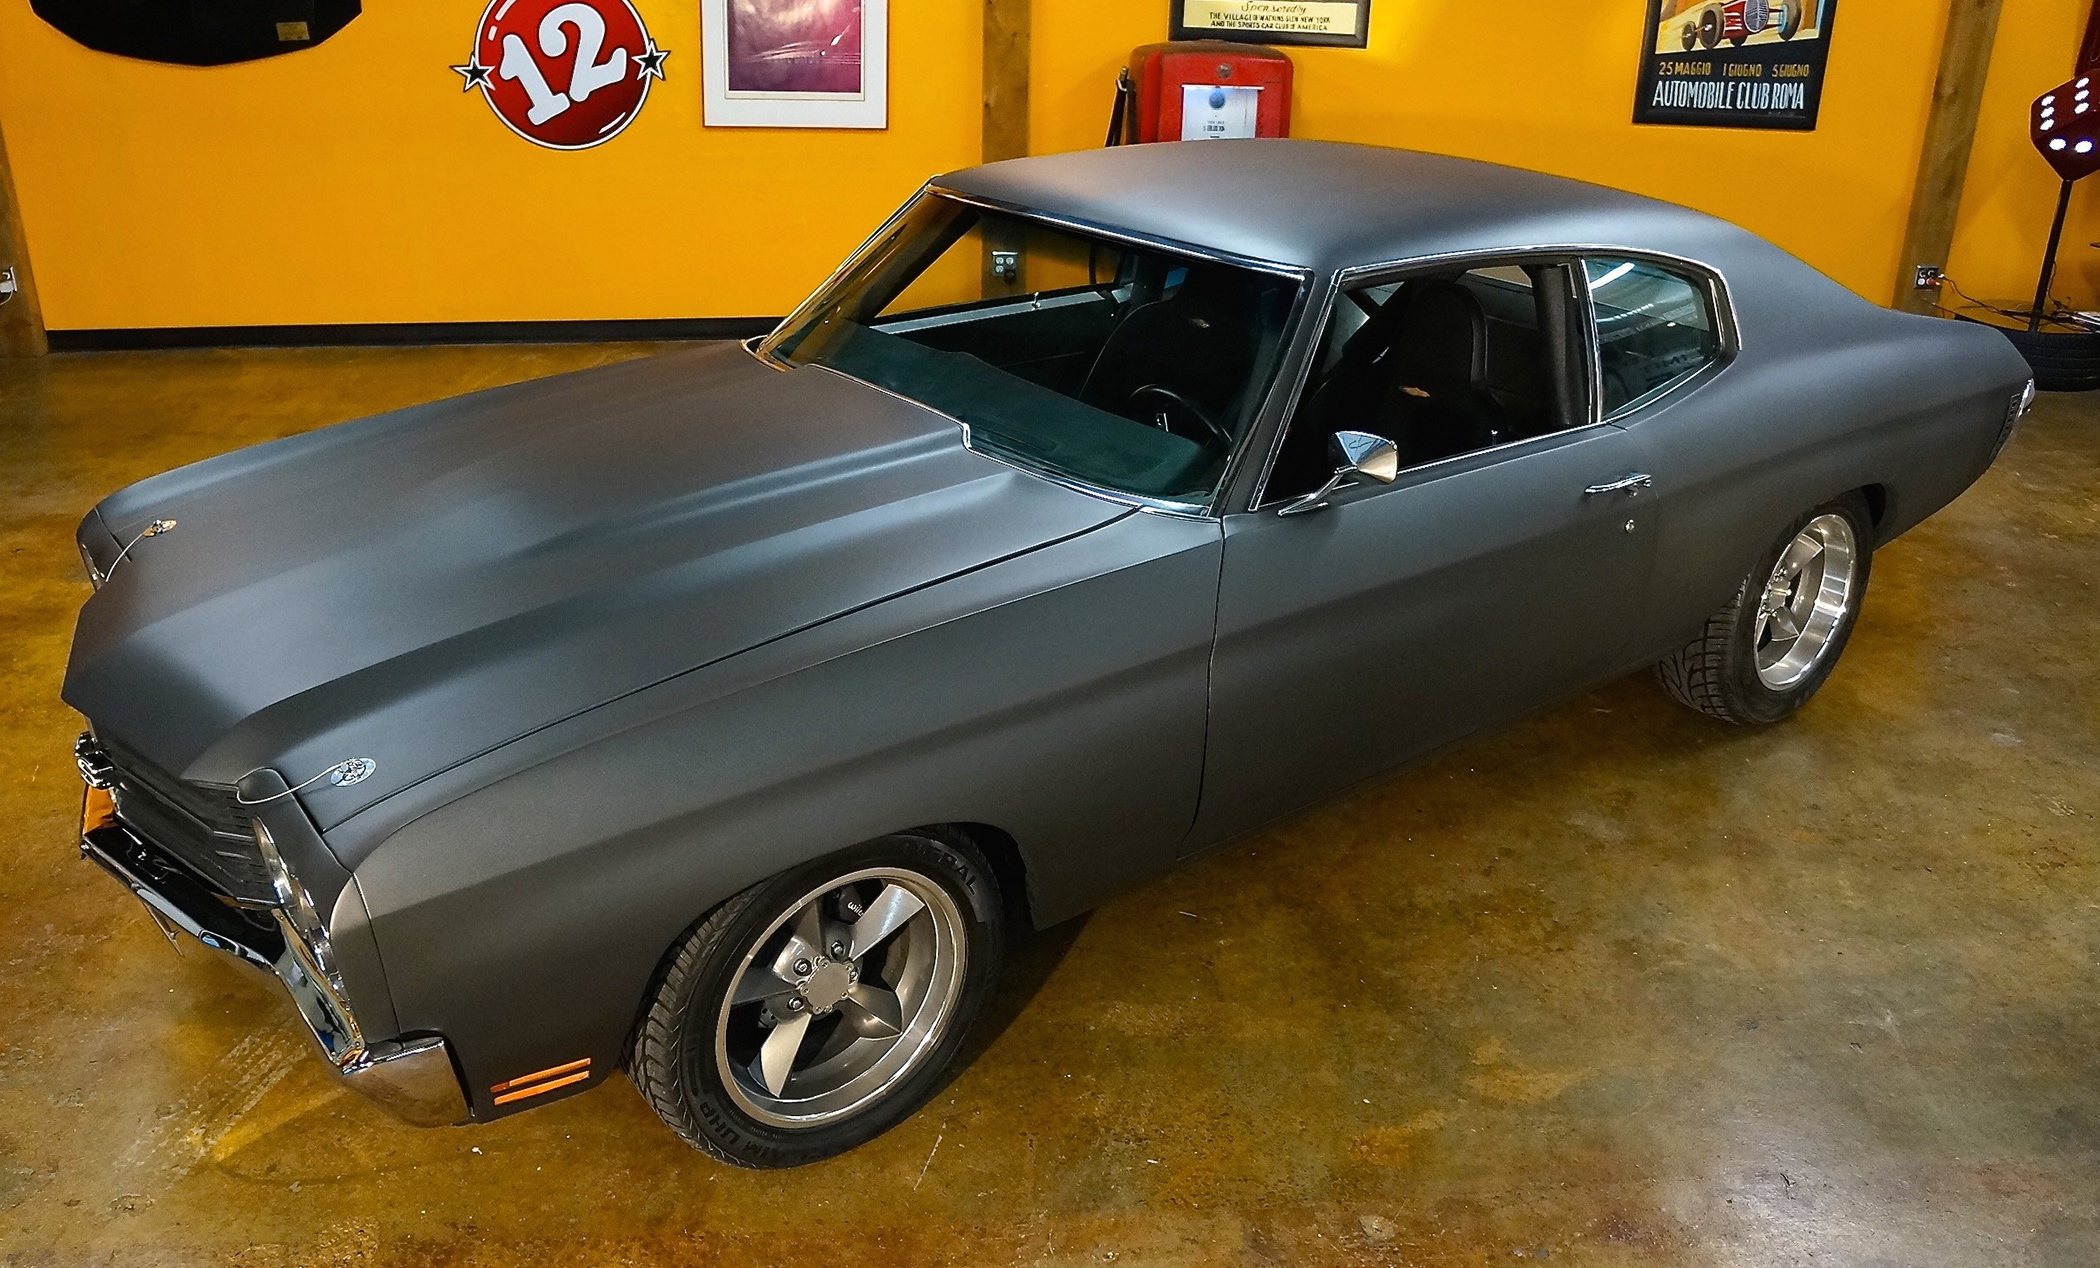 Chevelle SS Fast and Furious 4 by 4WheelsSociety on DeviantArt